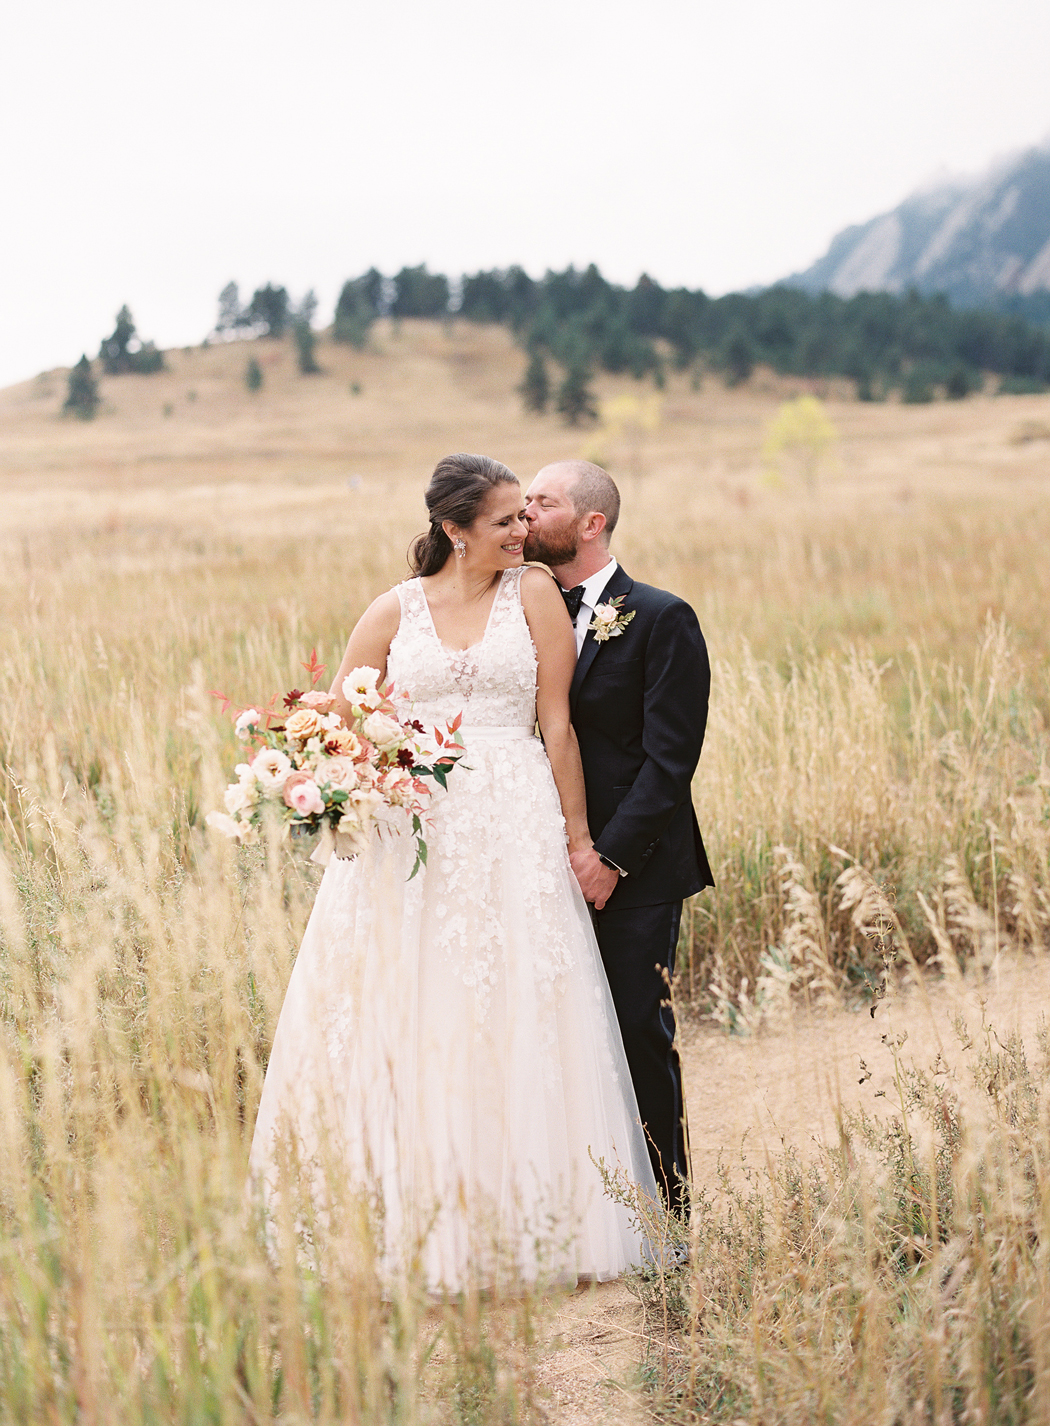 groom kisses bride on the cheek standing in the middle of an open field